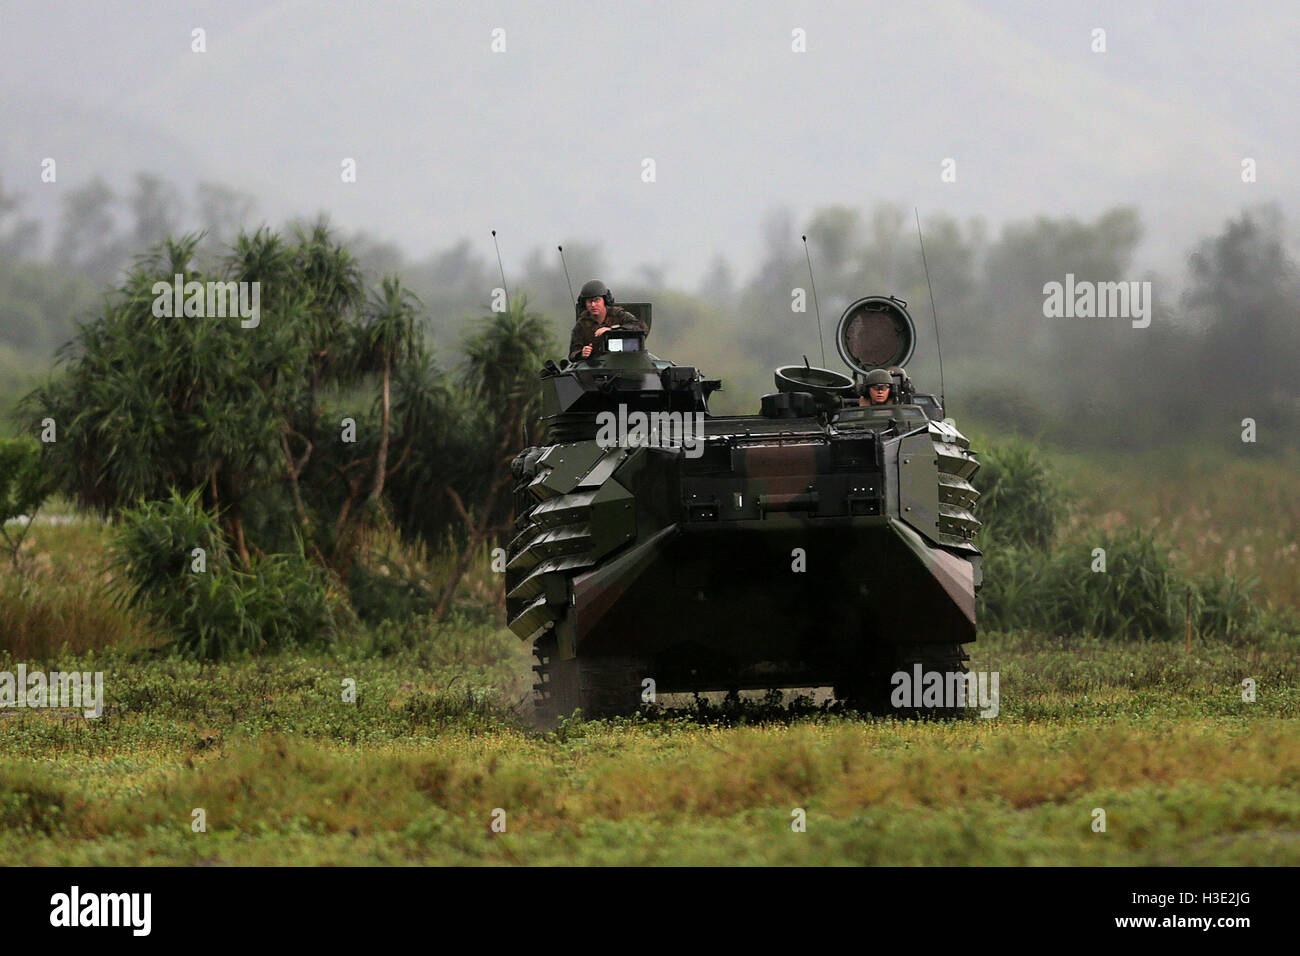 Zambales, Philippines. 7th Oct, 2016. U.S. Marines on board an amphibious assault vehicle participate in the Mechanized Stock Photo